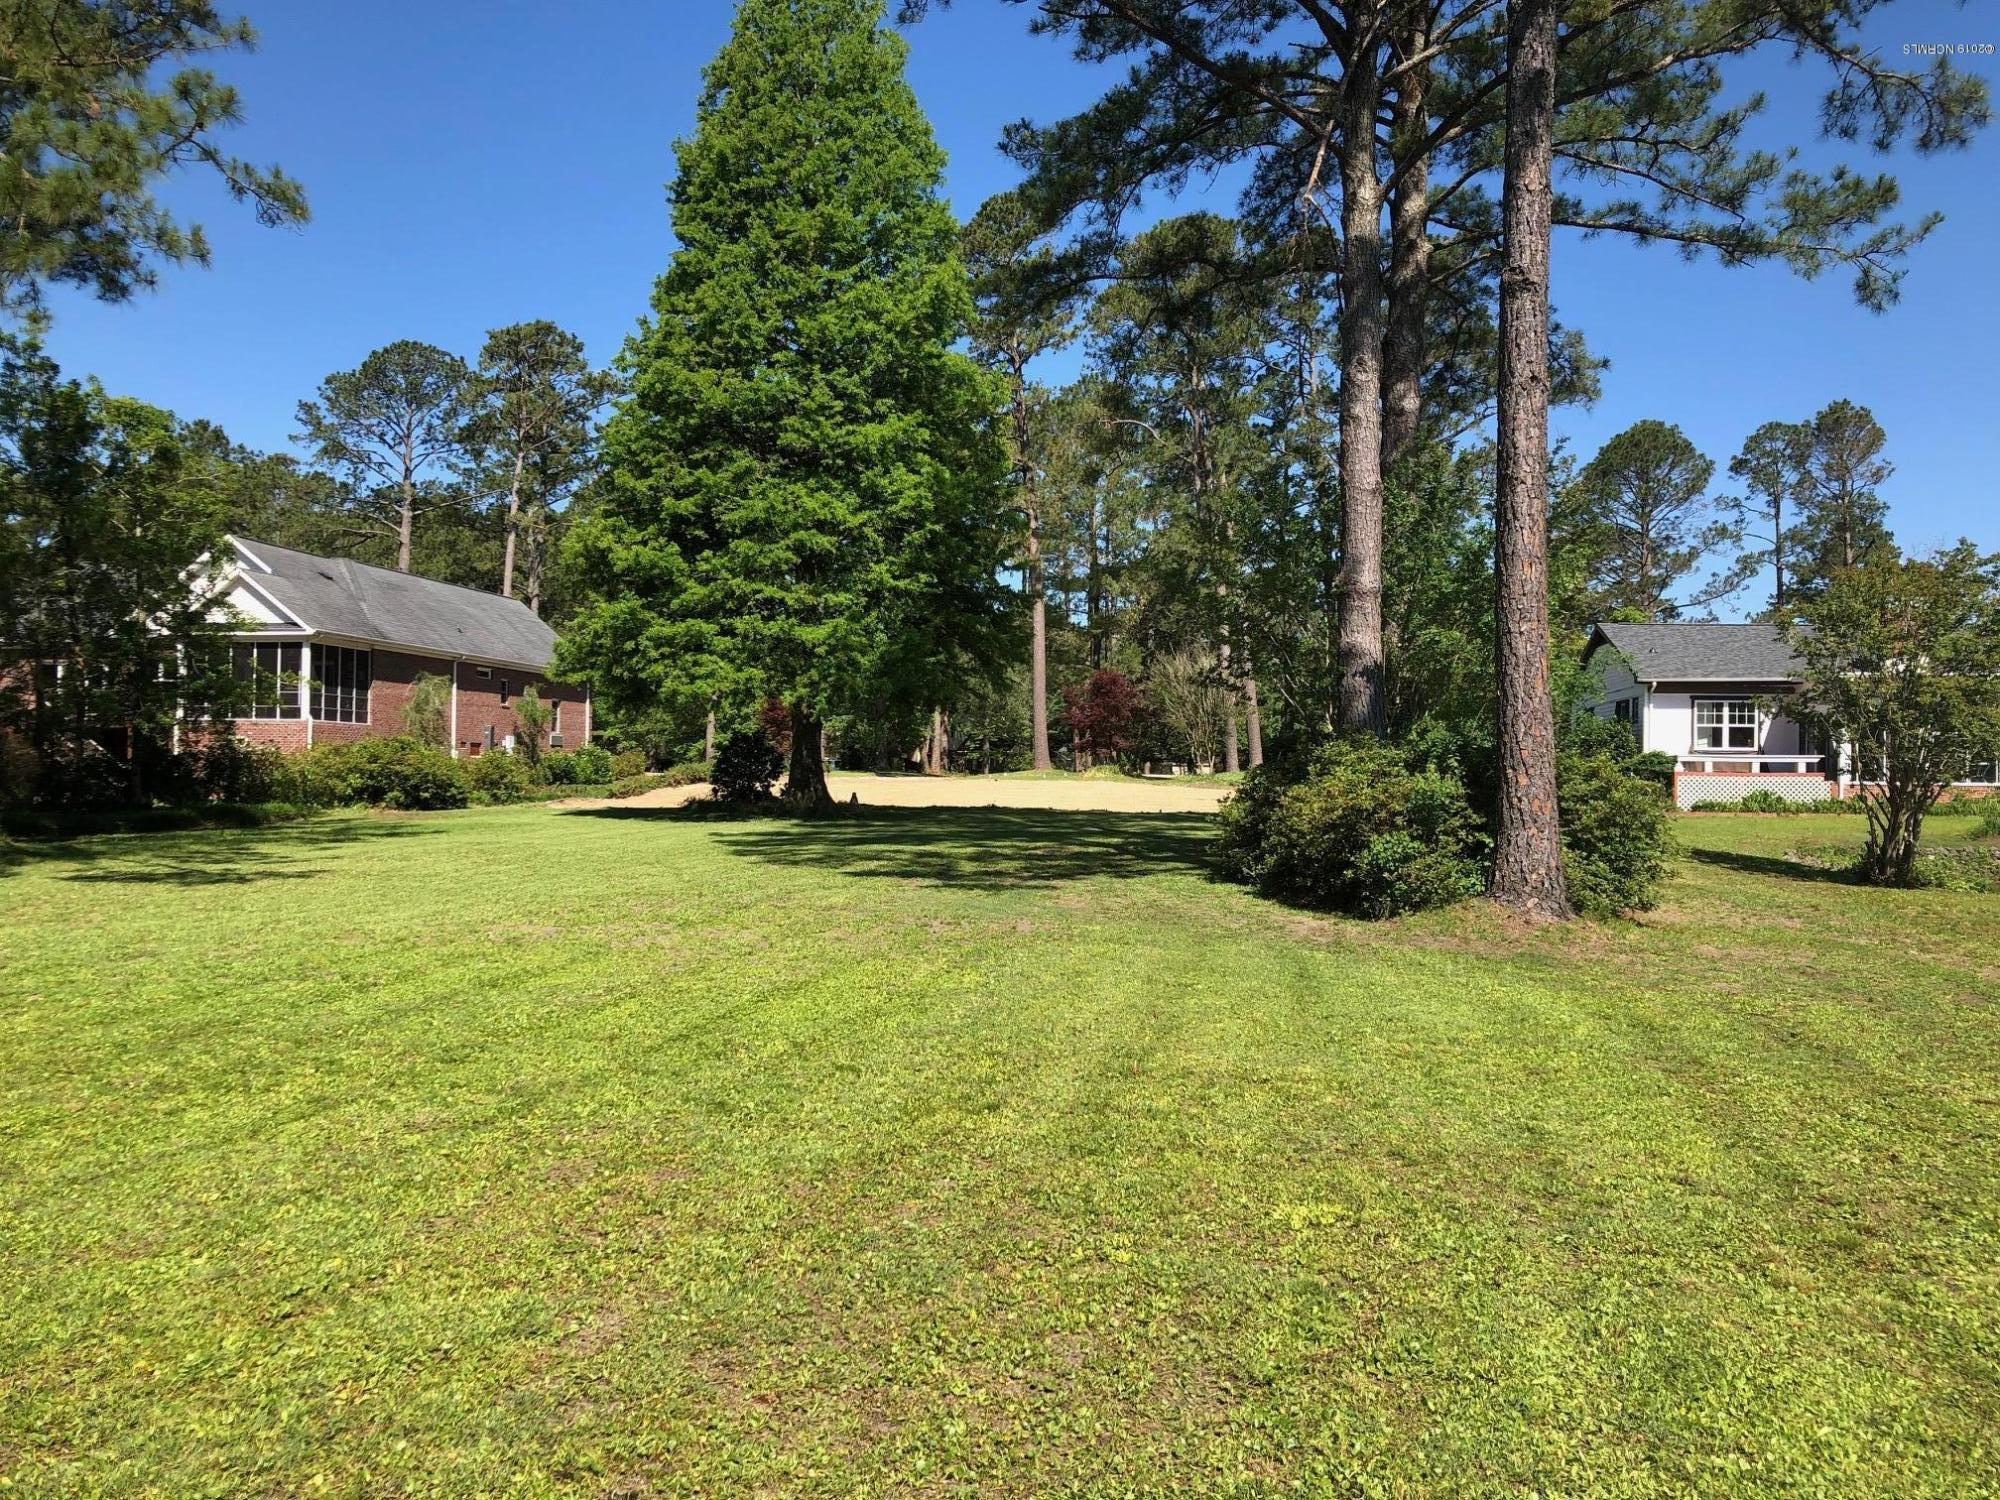 240 Shoreline Drive, New Bern, North Carolina 28562, ,Residential land,For sale,Shoreline,100154850